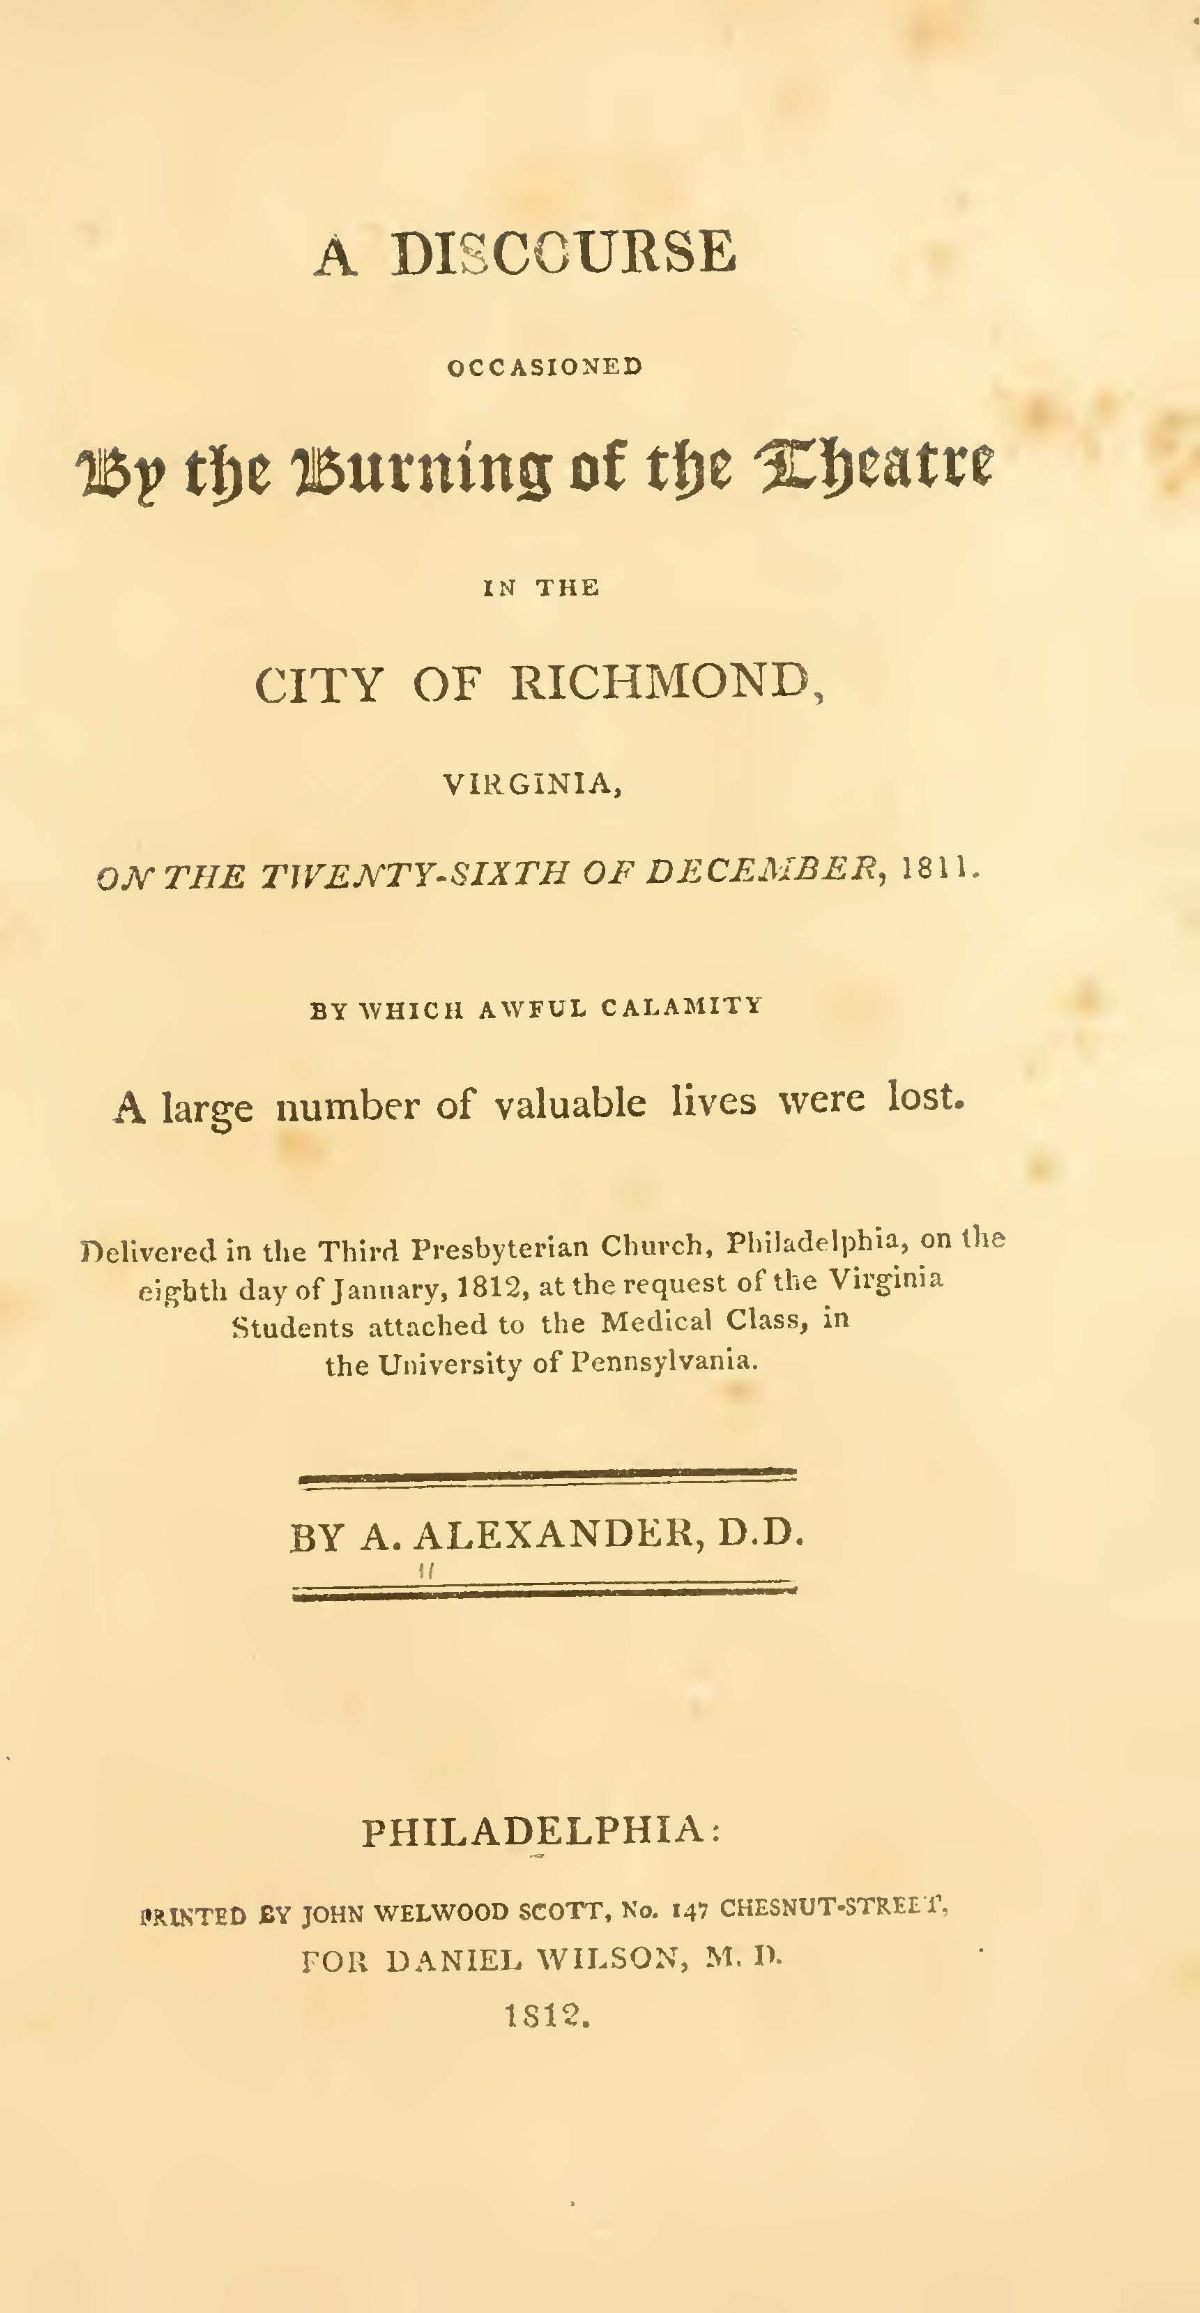 Alexander, Archibald, A Discourse Occasioned by the Burning of the Theatre in the City of Richmond, Virginia Title Page.jpg